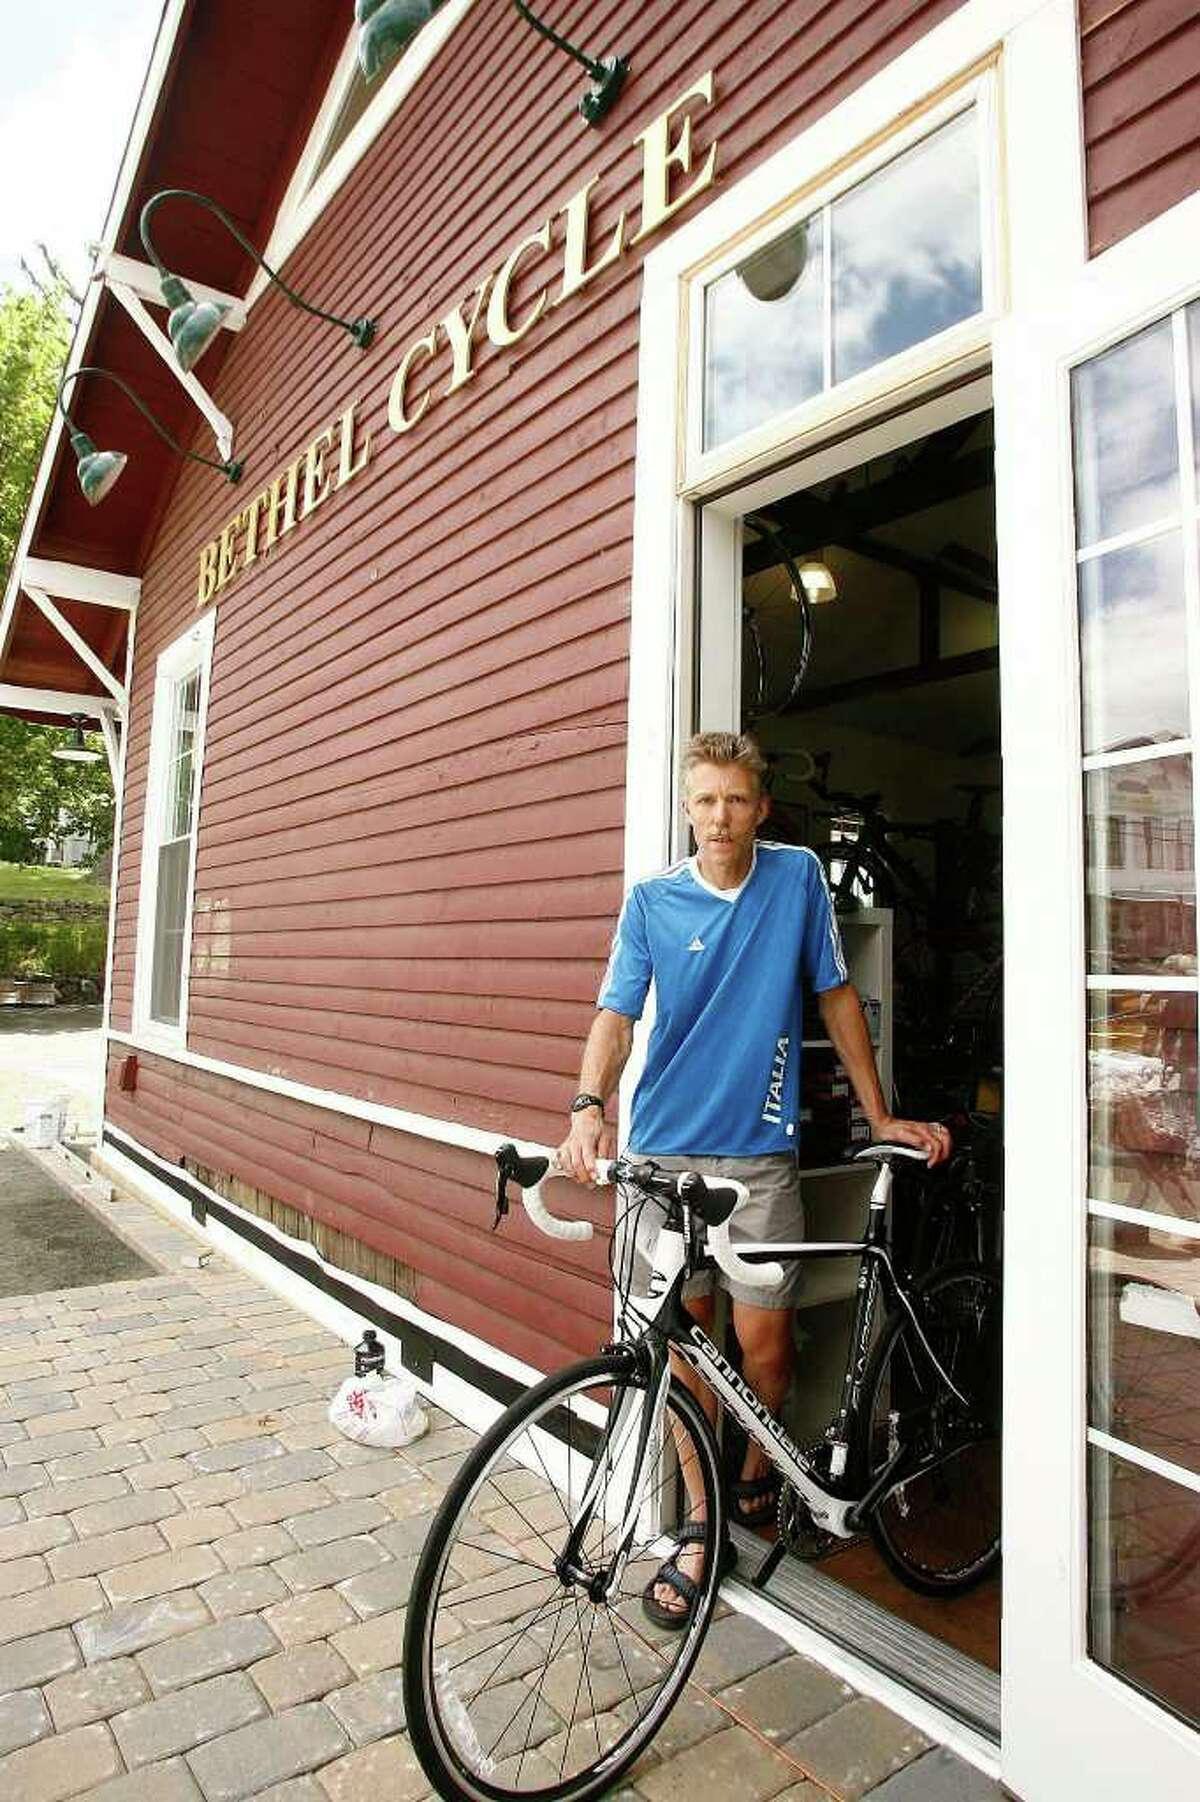 Owner and manager Greg Pelican poses for a photograph in the doorway of Bethel Cycle's new location in the historic train station in Bethel on Friday, July 1, 2011.